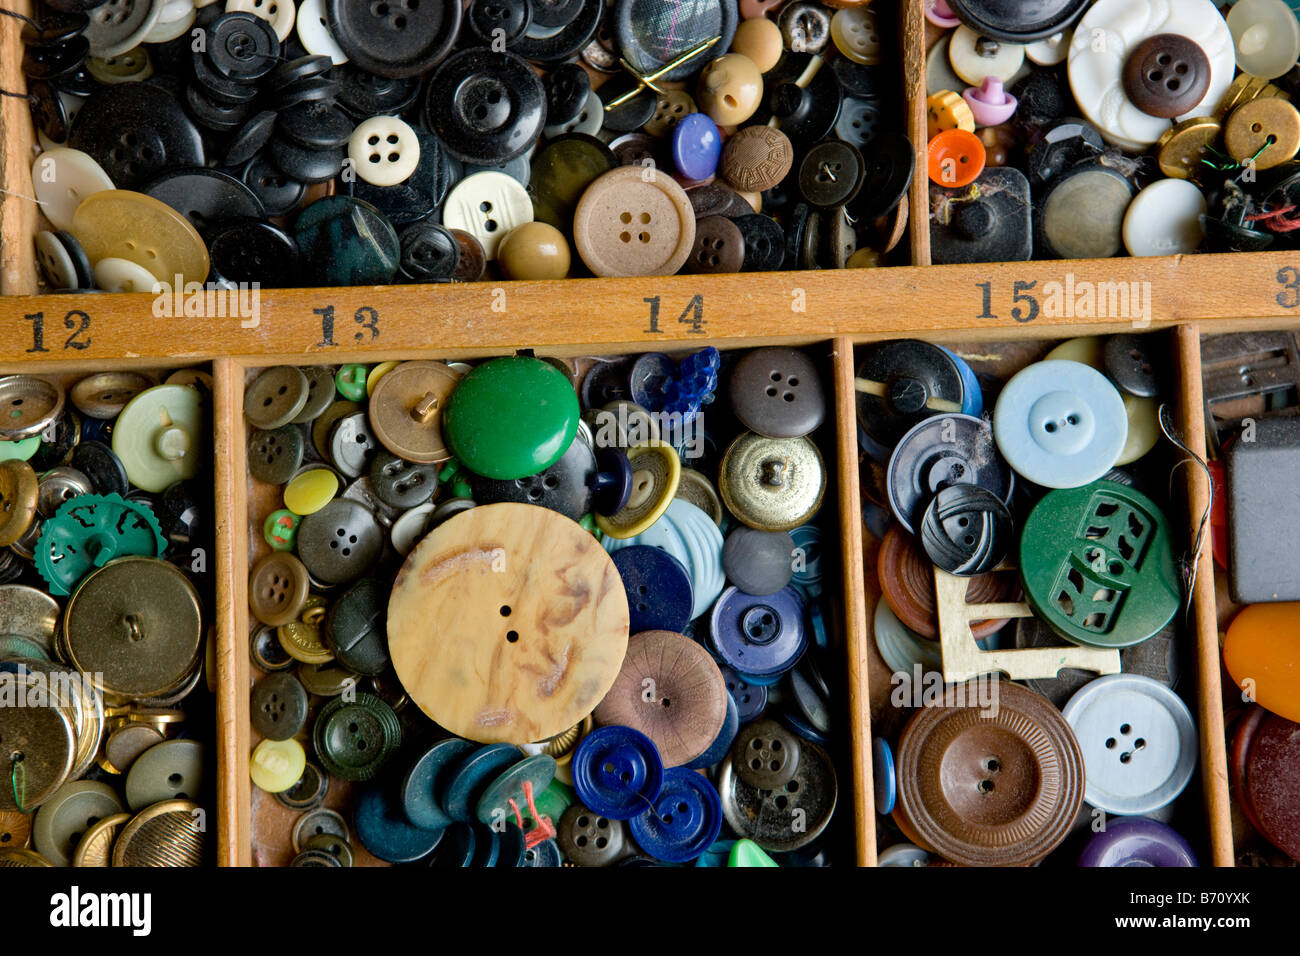 A Collection of Multi Colored Buttons - Stock Image